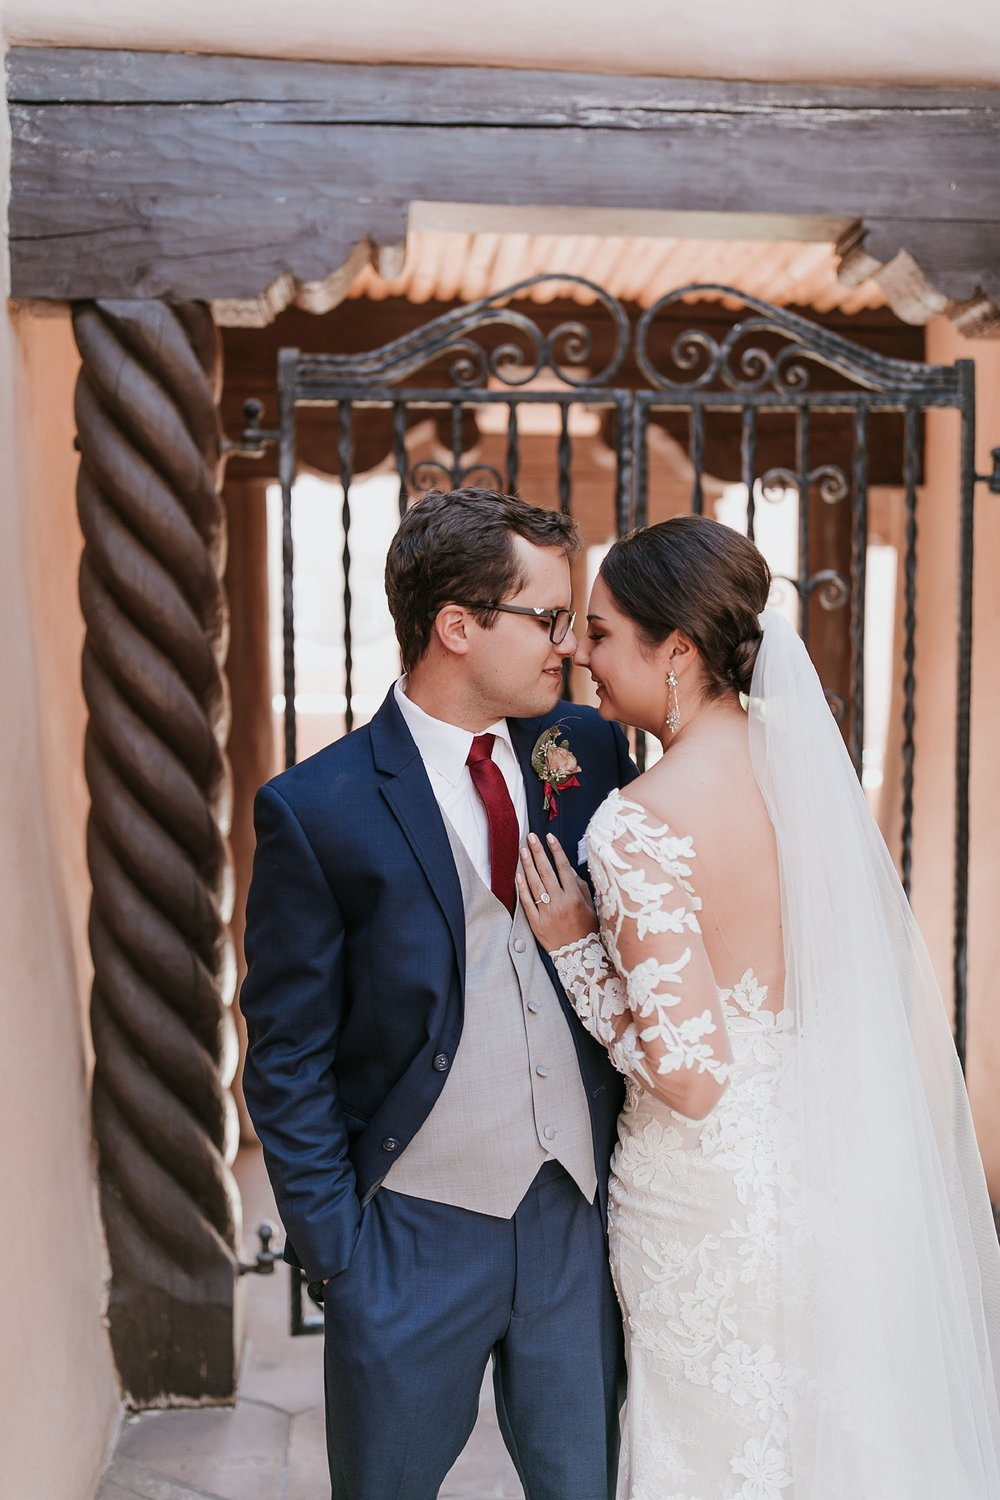 Alicia+lucia+photography+-+albuquerque+wedding+photographer+-+santa+fe+wedding+photography+-+new+mexico+wedding+photographer+-+new+mexico+wedding+-+wedding+photographer+-+wedding+photographer+team_0013.jpg